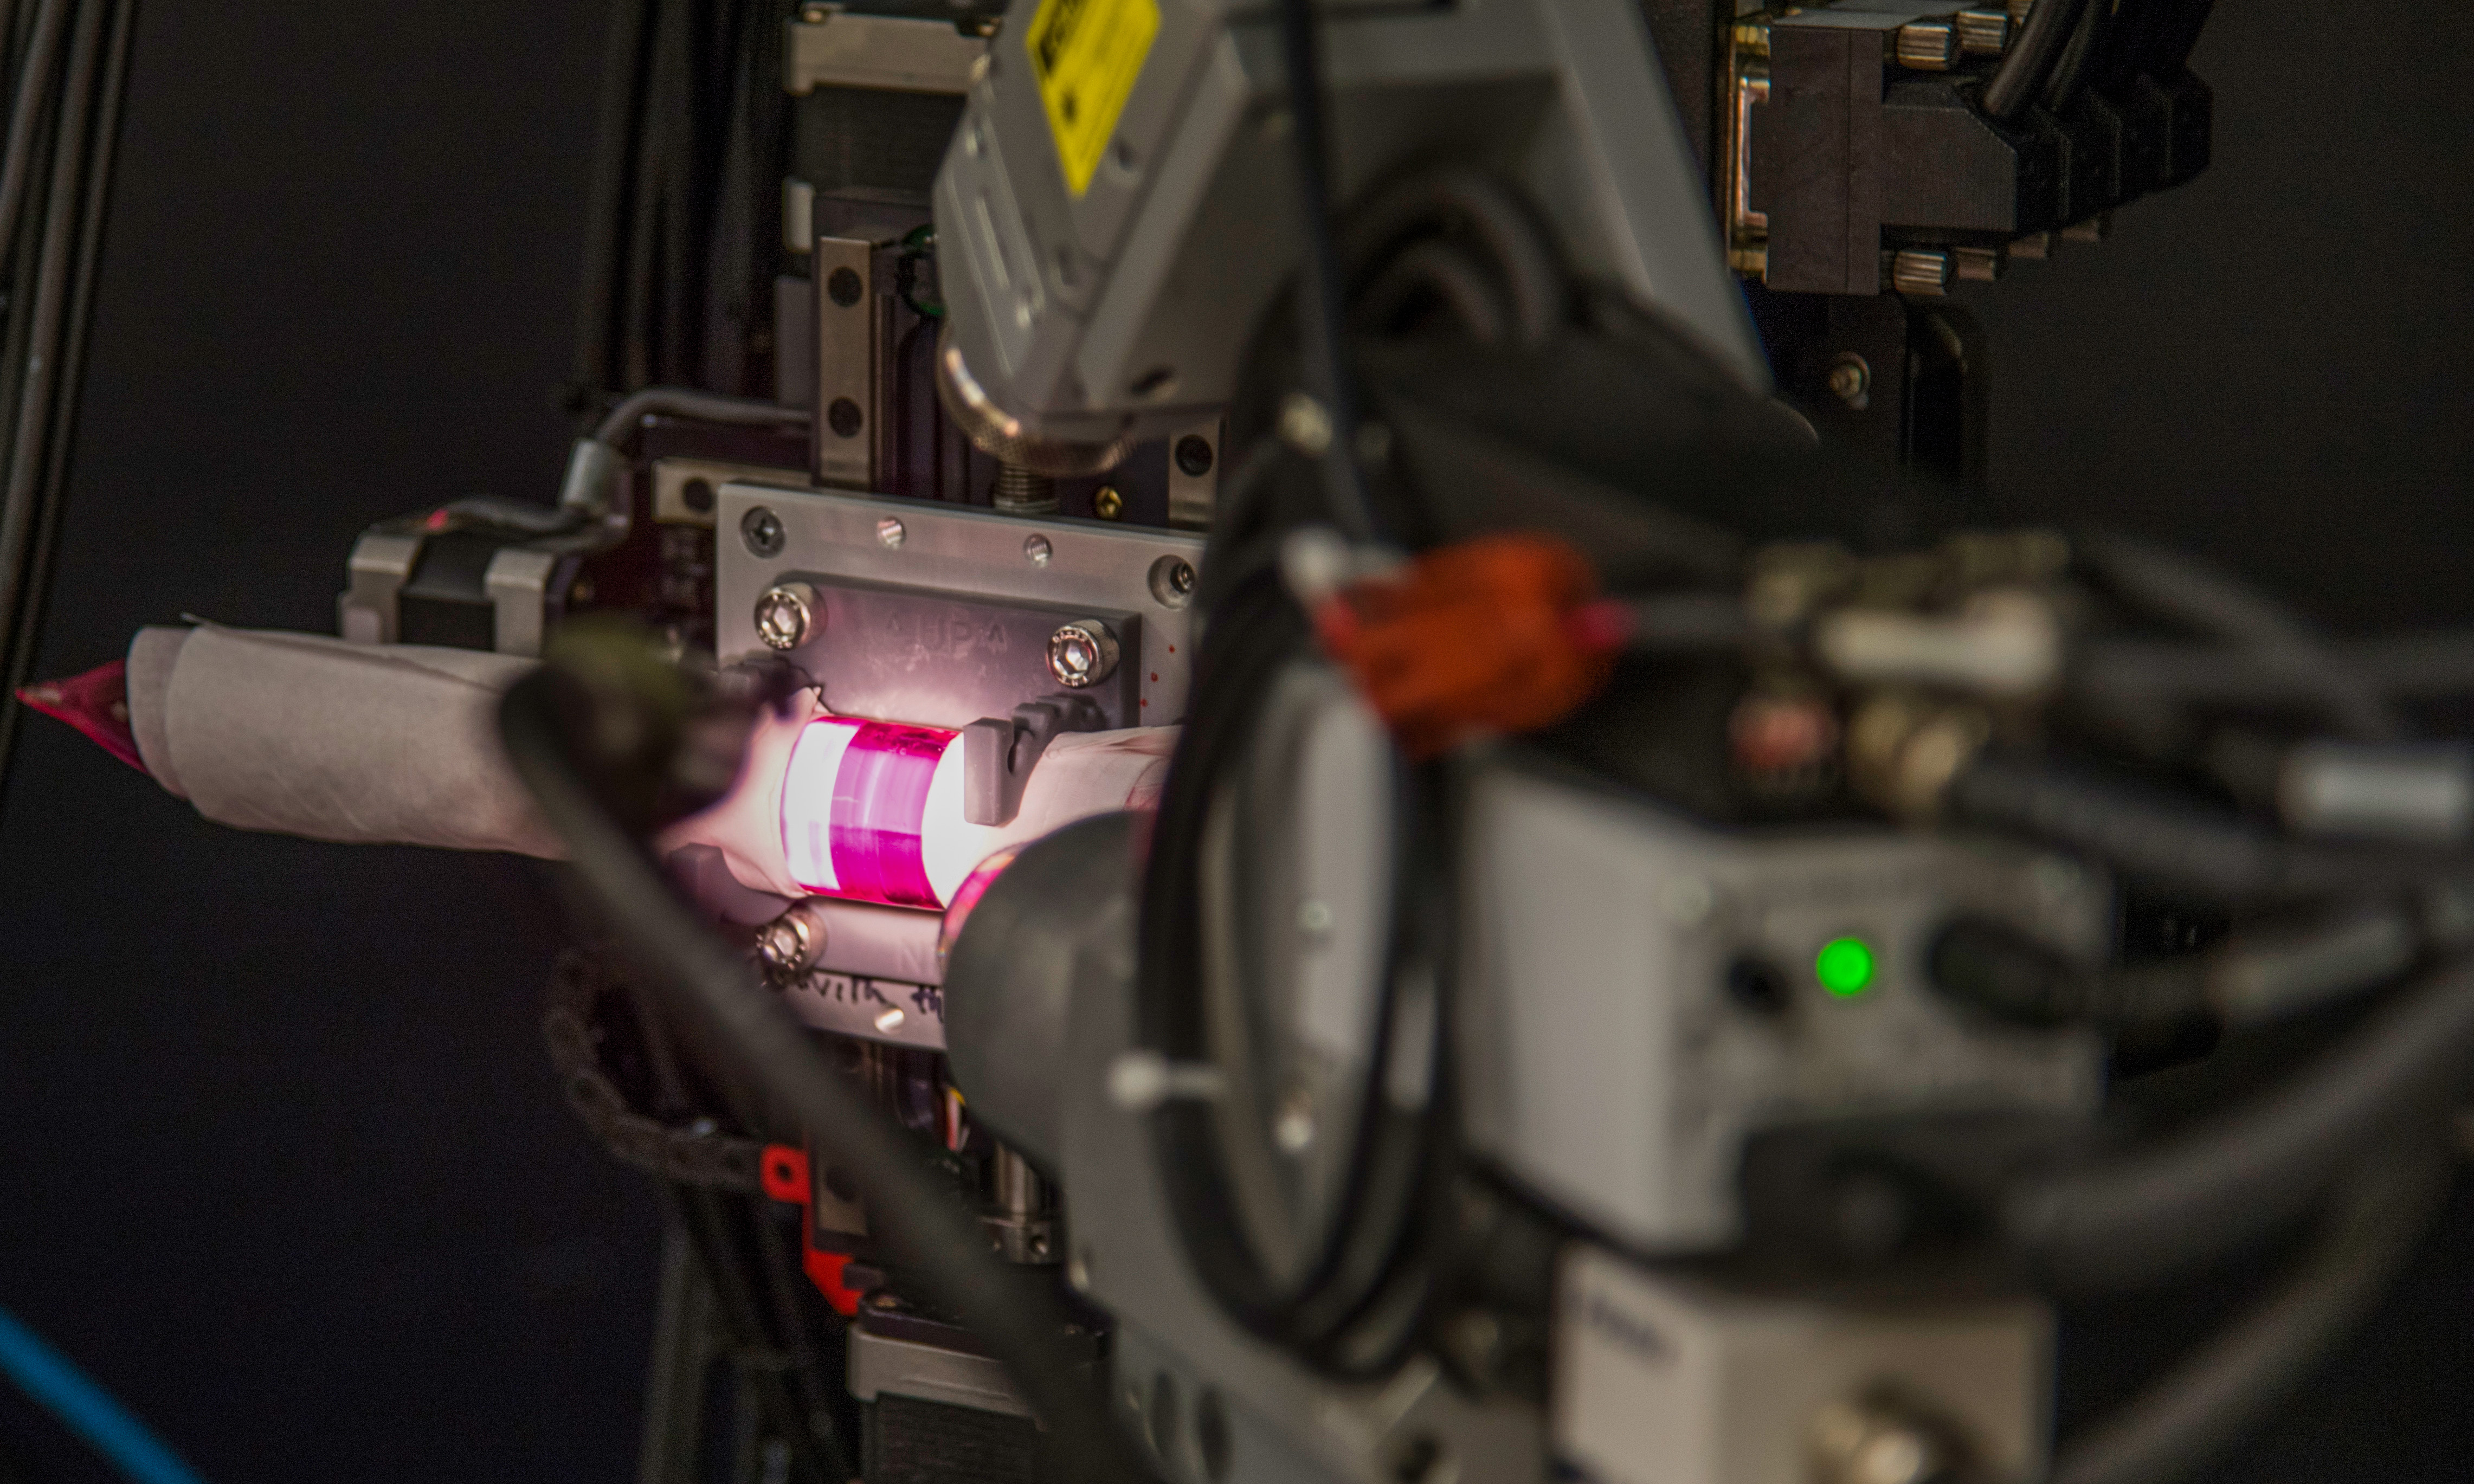 A ruby colored rod, wrapped in tissue paper and illuminated by a bright light, mounted inside an X-ray diffraction machine